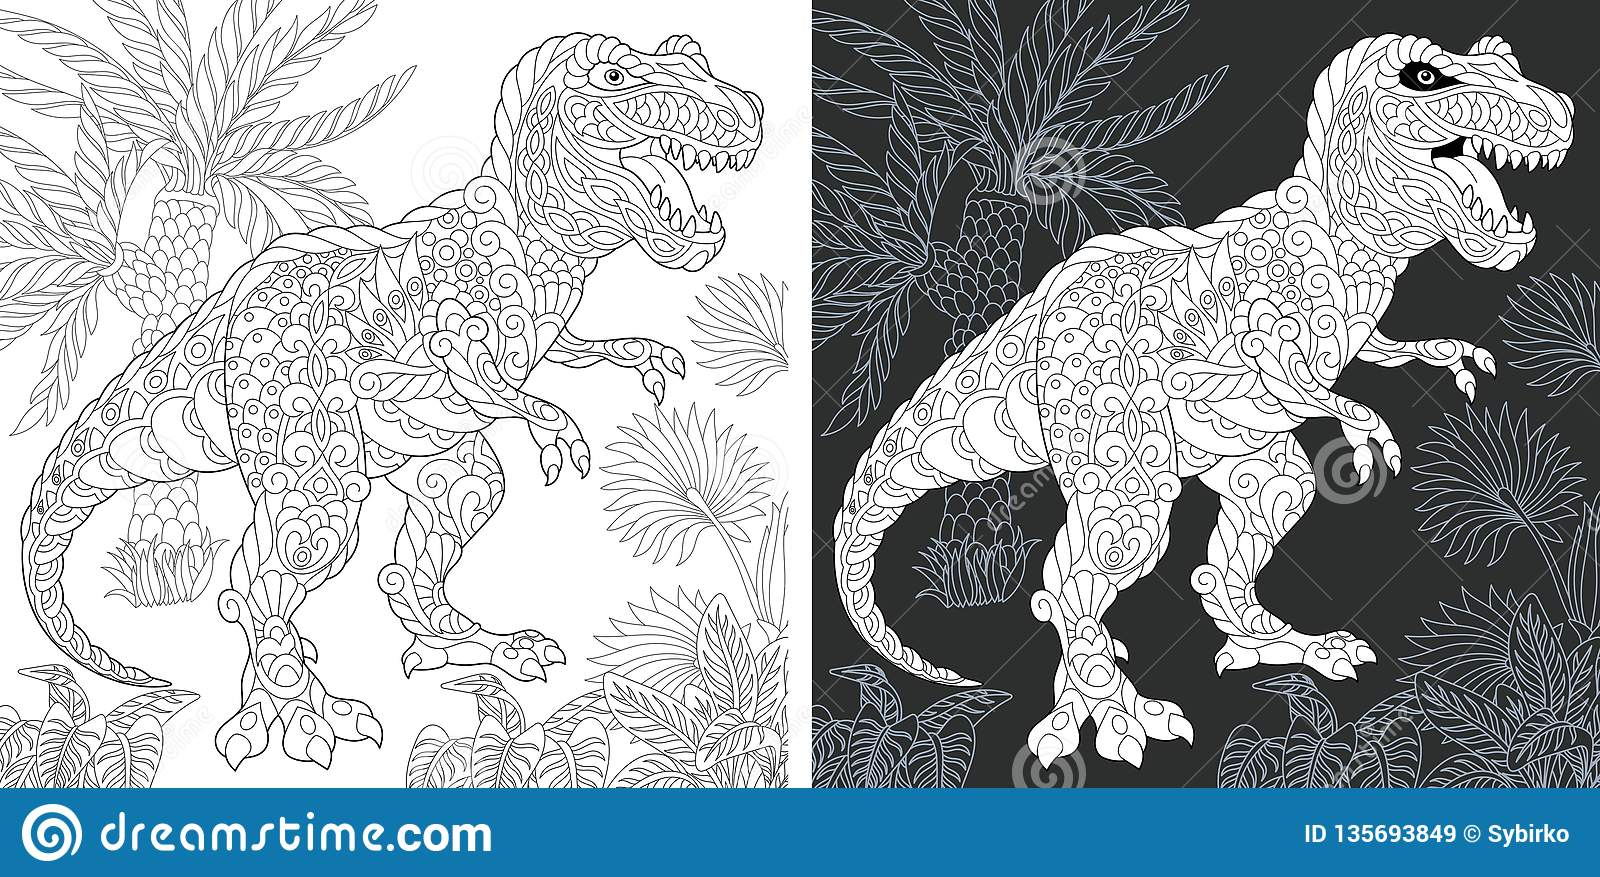 Tyrannosaur Fight coloring page | Free Printable Coloring Pages | 877x1600